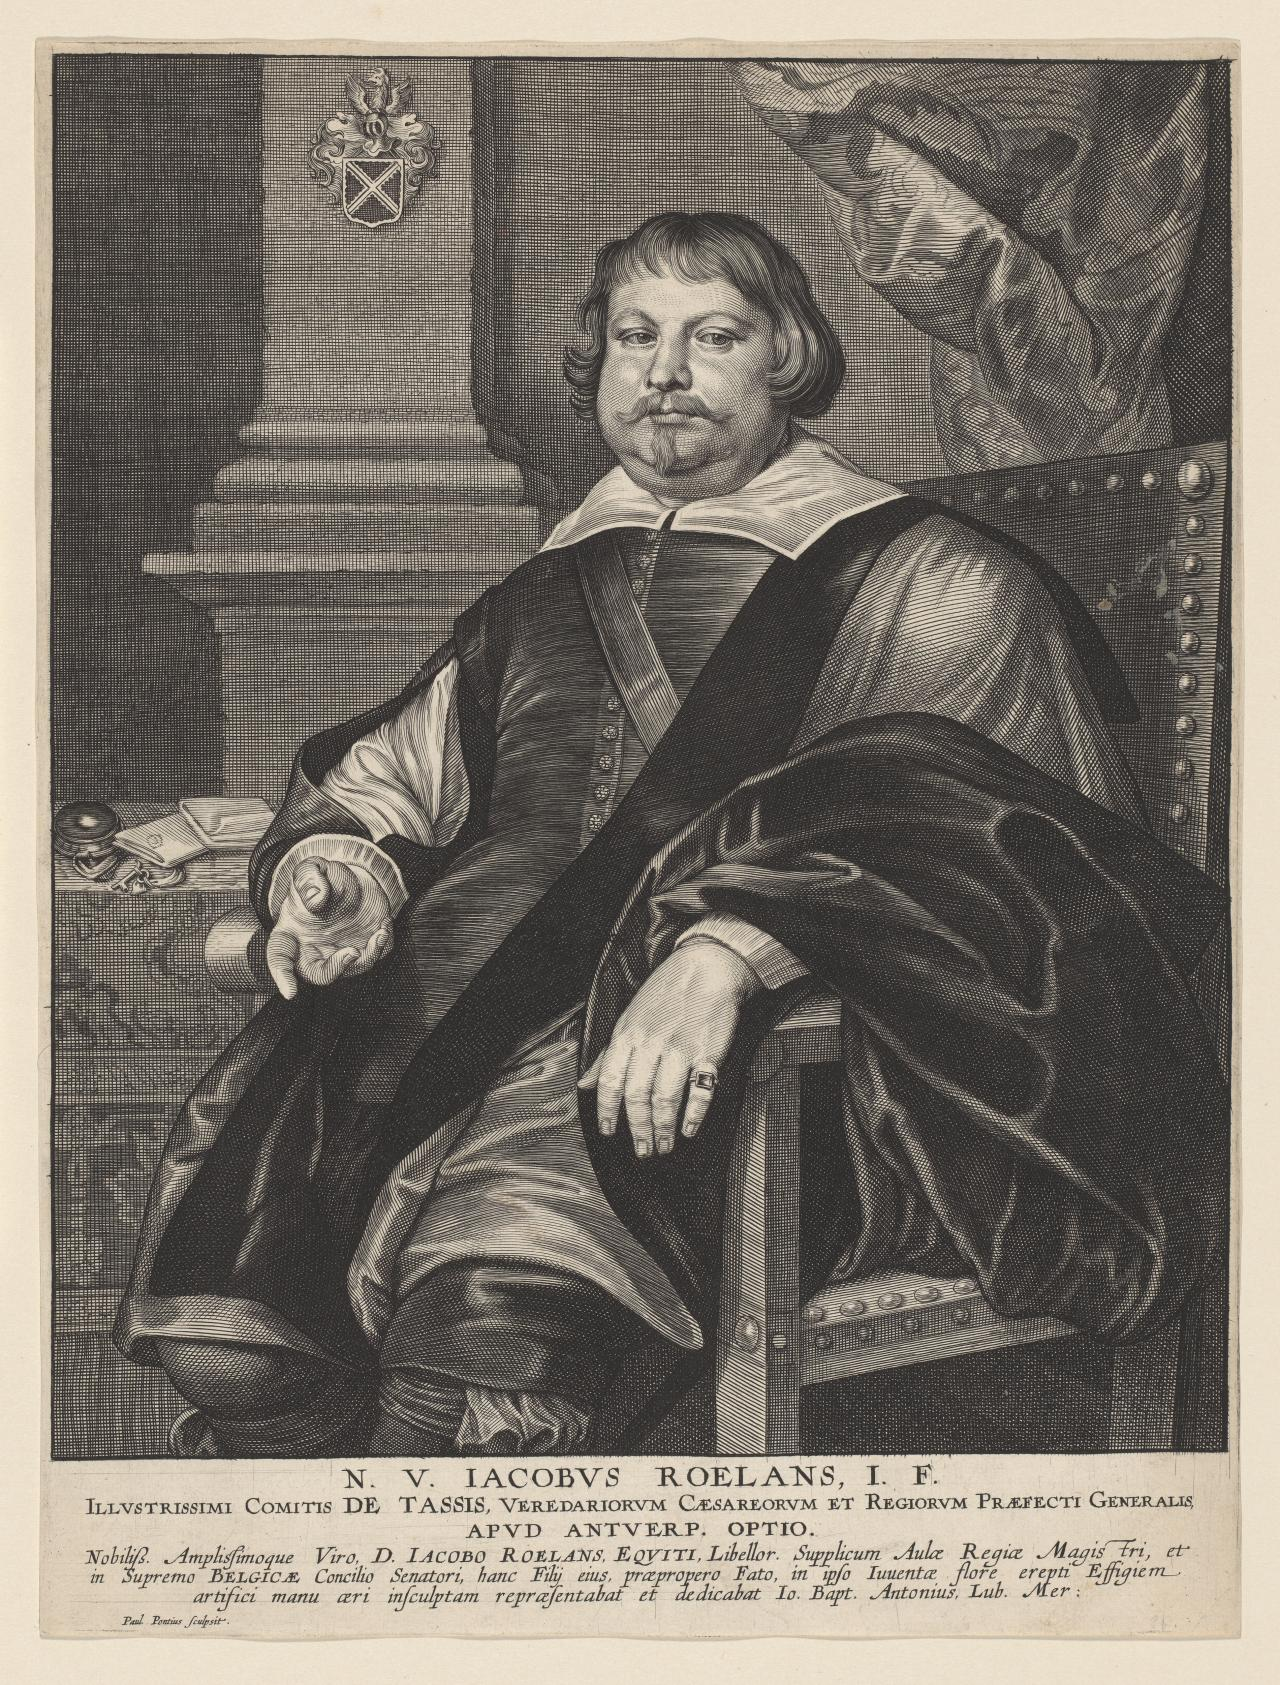 Jacob Roelans, Count of Tassis